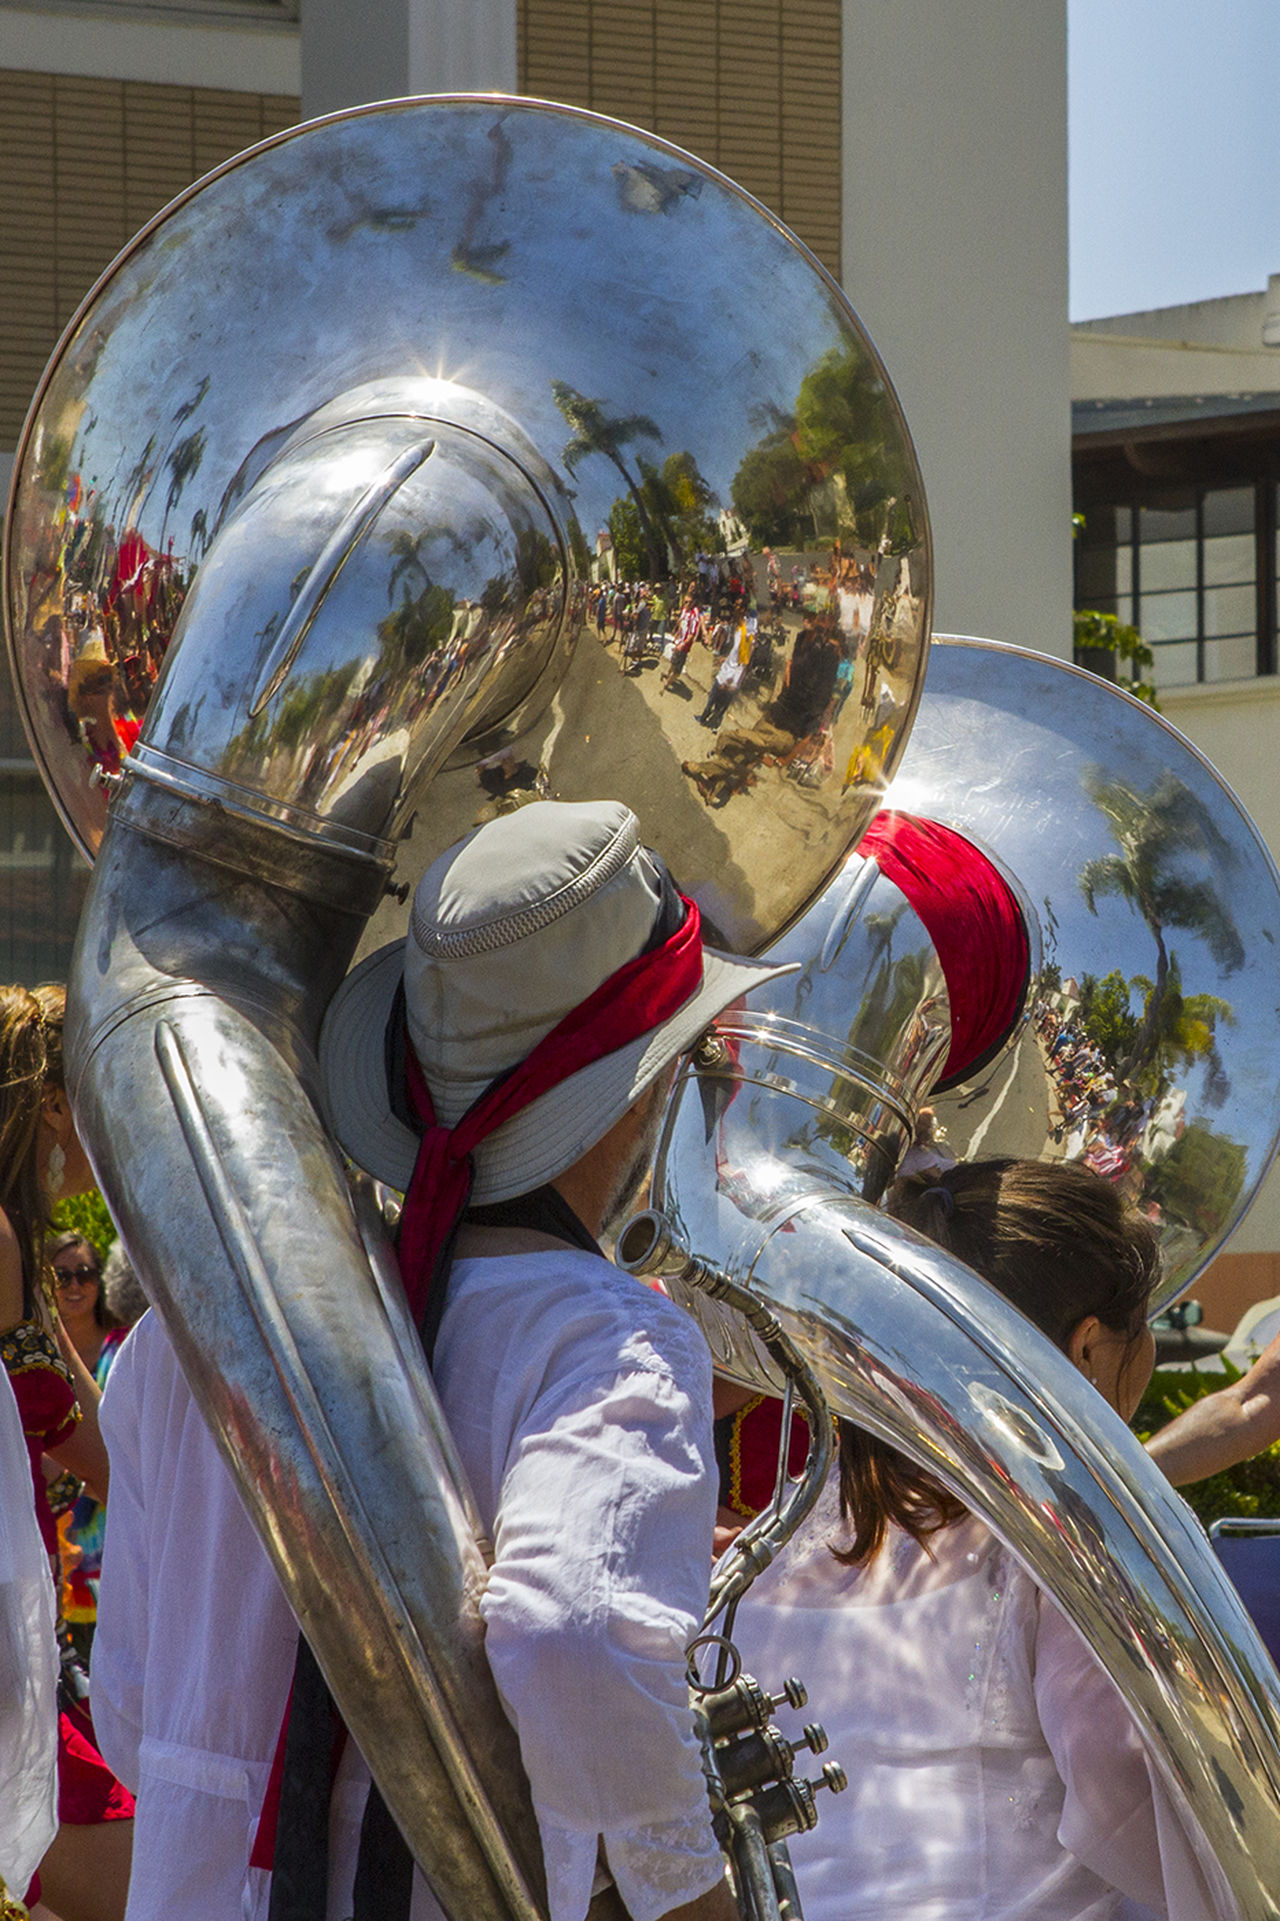 Parade Day Building Exterior City Life Day Outdoors Parade People Reflections Tuba Uniform